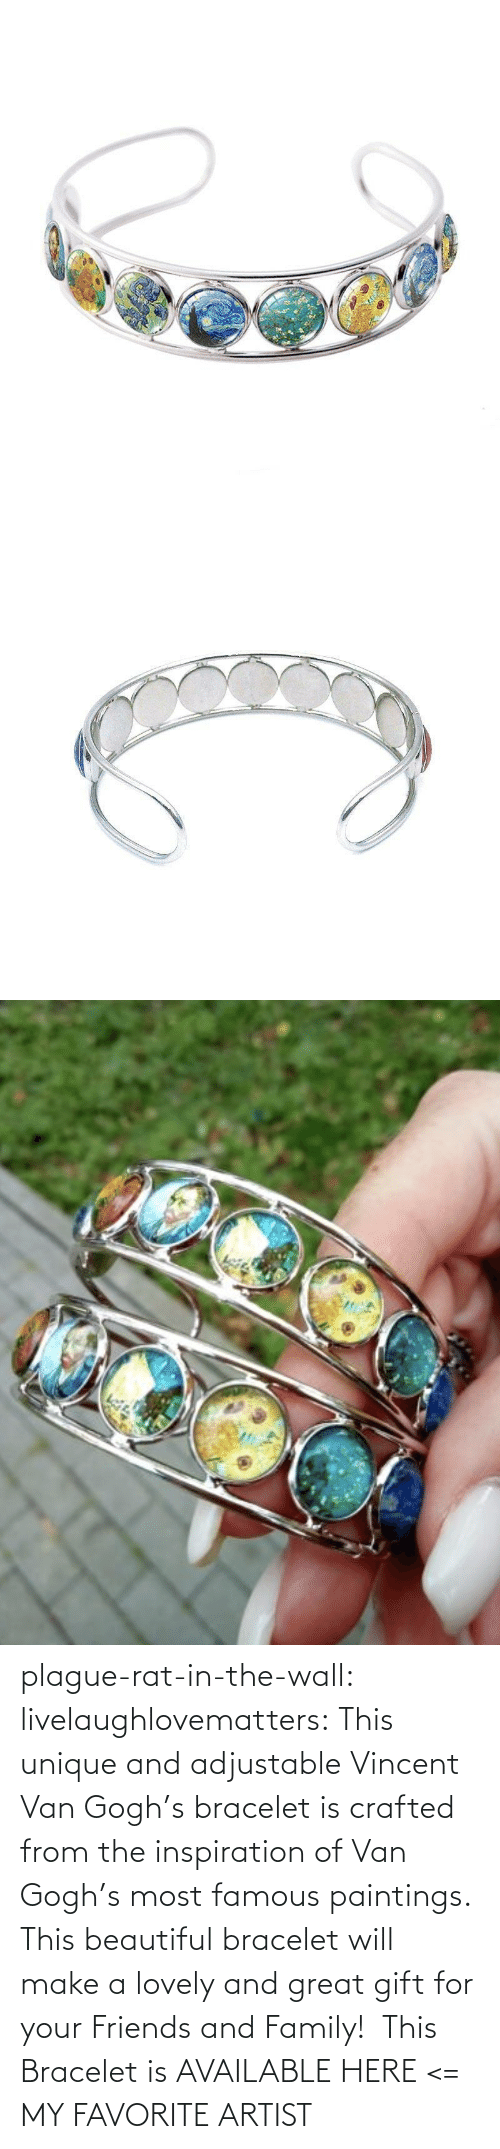 make a: plague-rat-in-the-wall:  livelaughlovematters: This unique and adjustable Vincent Van Gogh's bracelet is crafted from the inspiration of Van Gogh's most famous paintings. This beautiful bracelet will make a lovely and great gift for your Friends and Family!  This Bracelet is AVAILABLE HERE <=  MY FAVORITE ARTIST